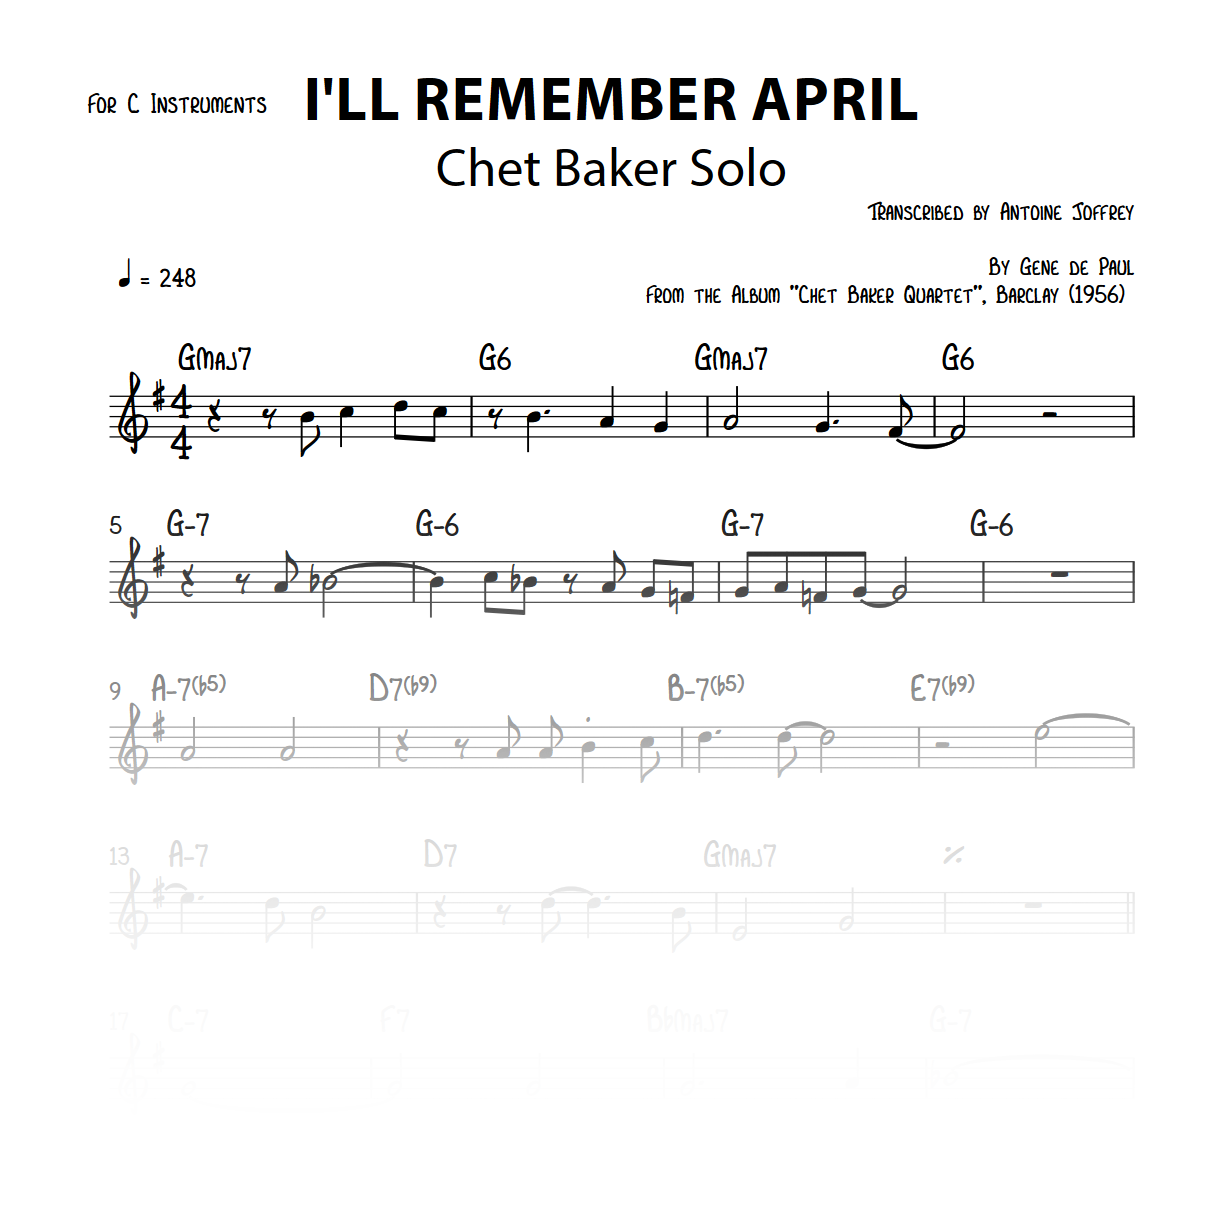 I'll Remember April - Chet Baker solo